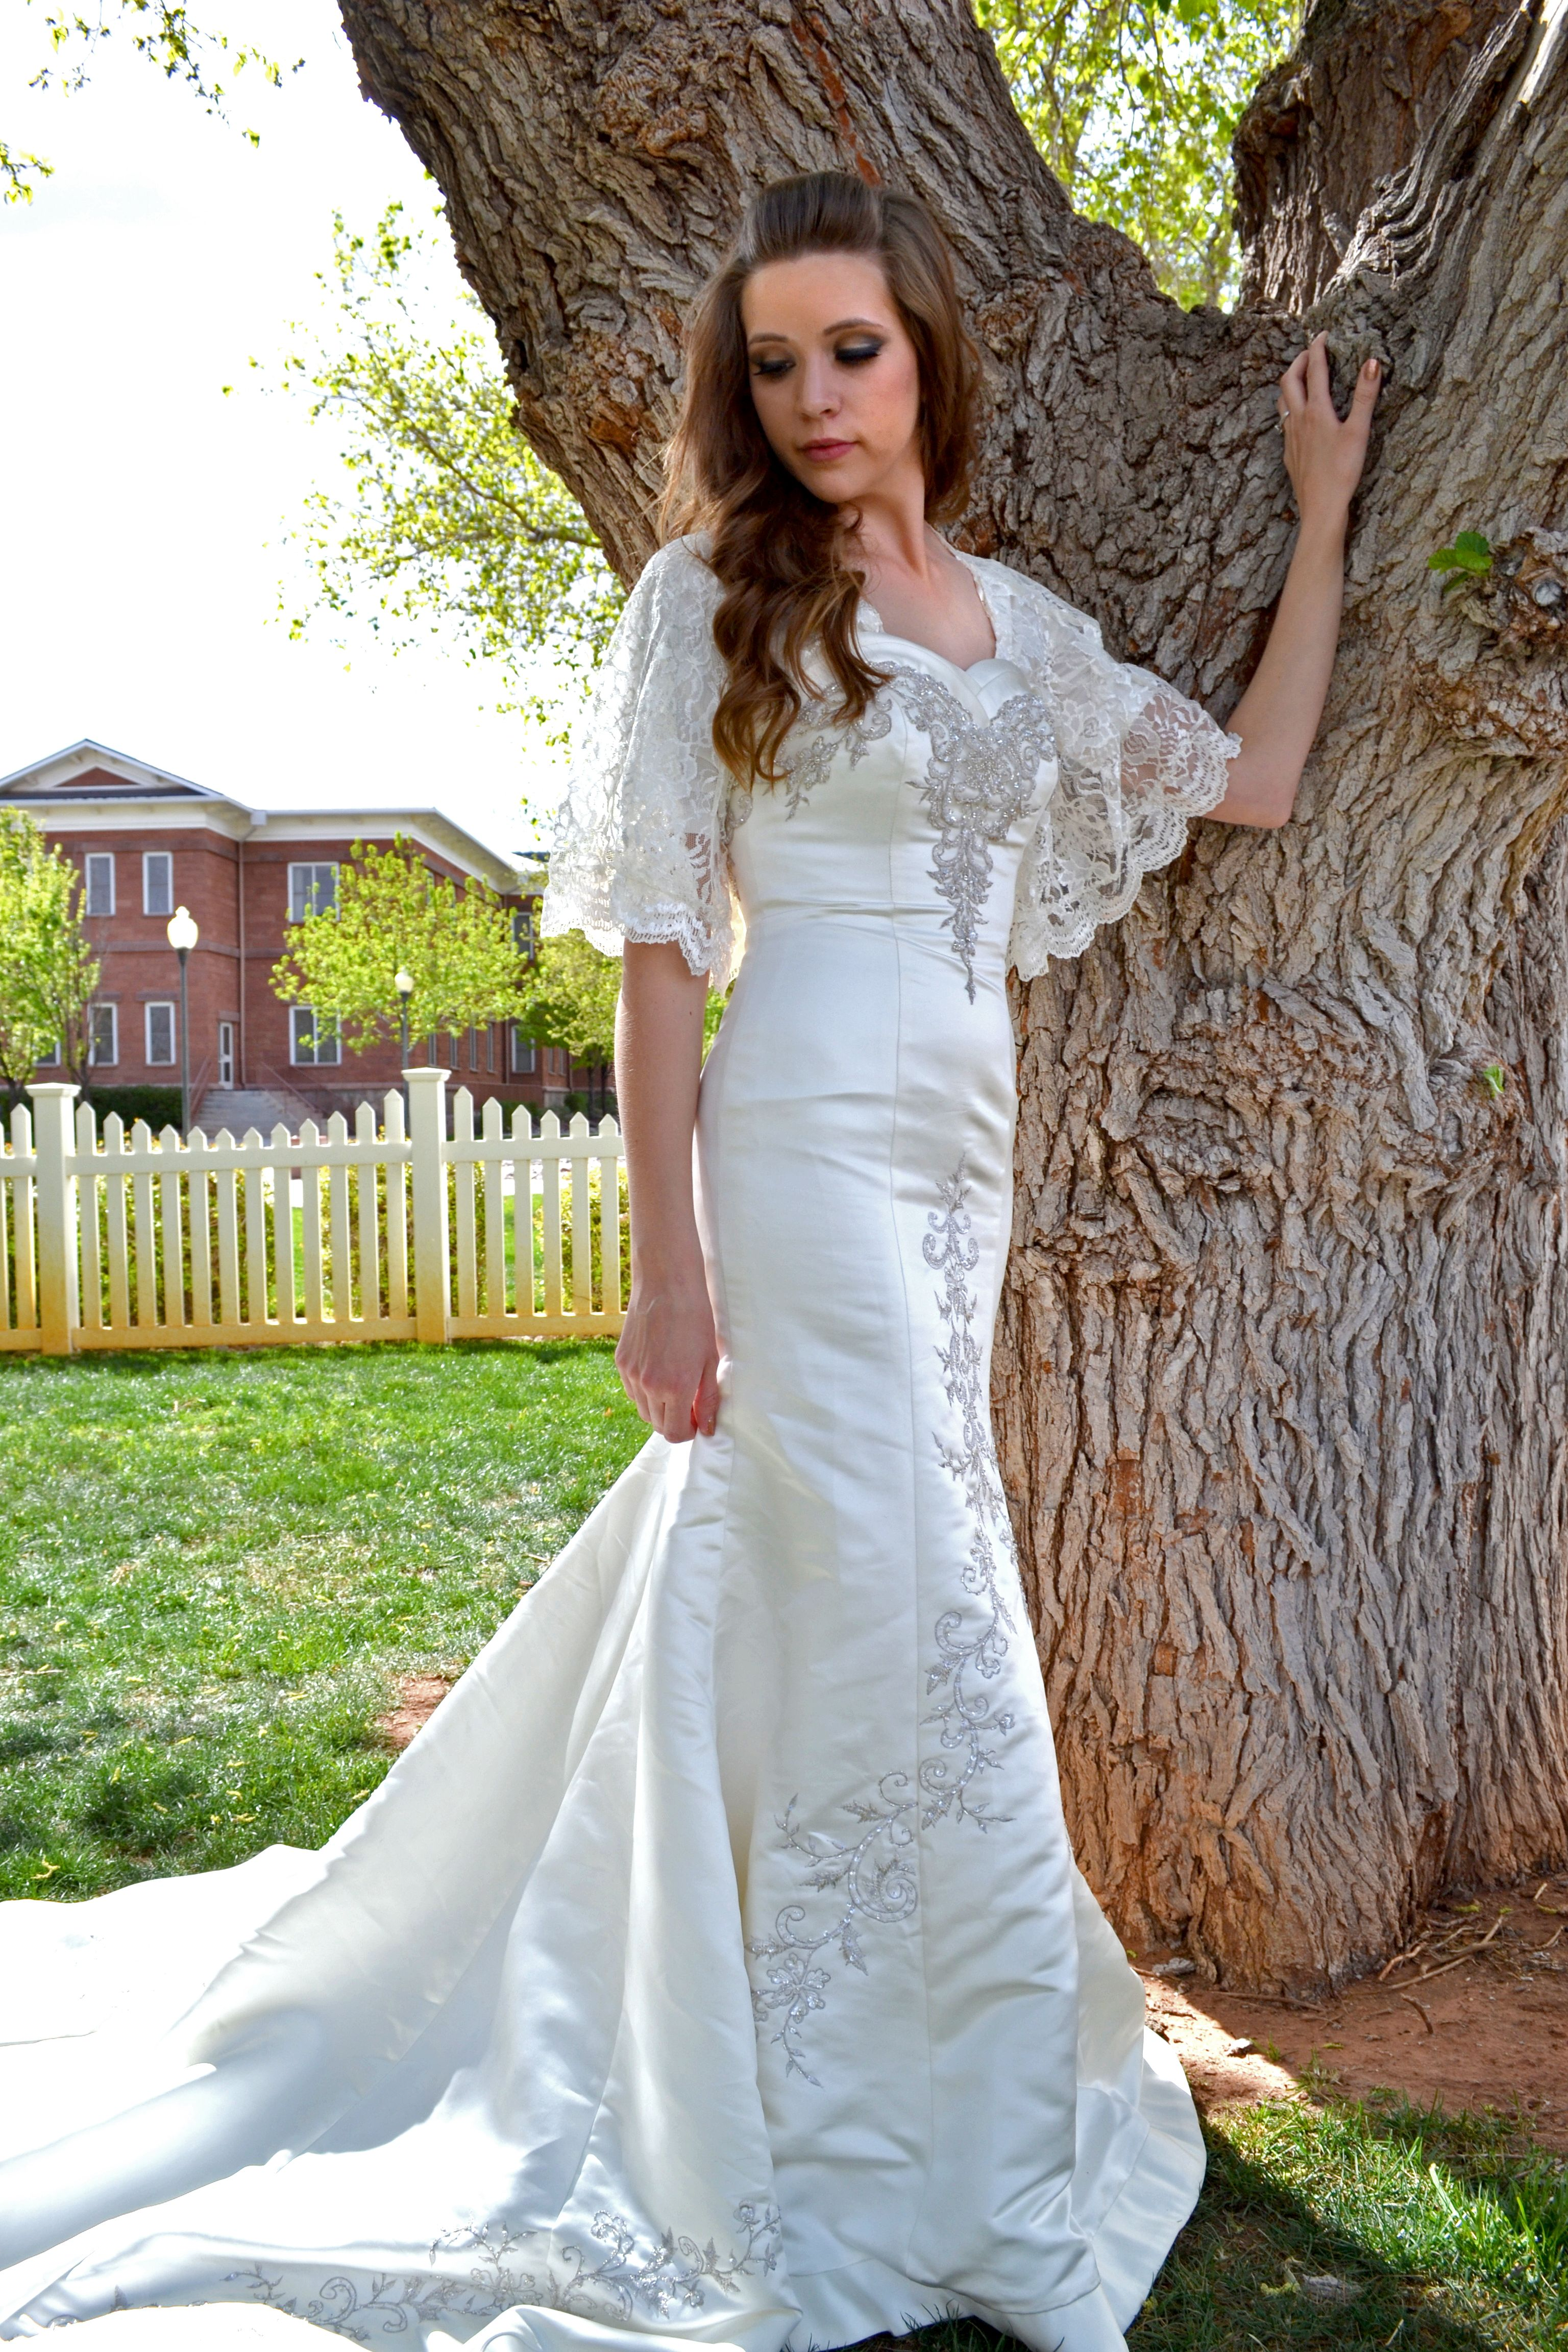 Patterns for wedding dresses  Used a simple batwing shirt pattern and   off lace at Hobby Lobby